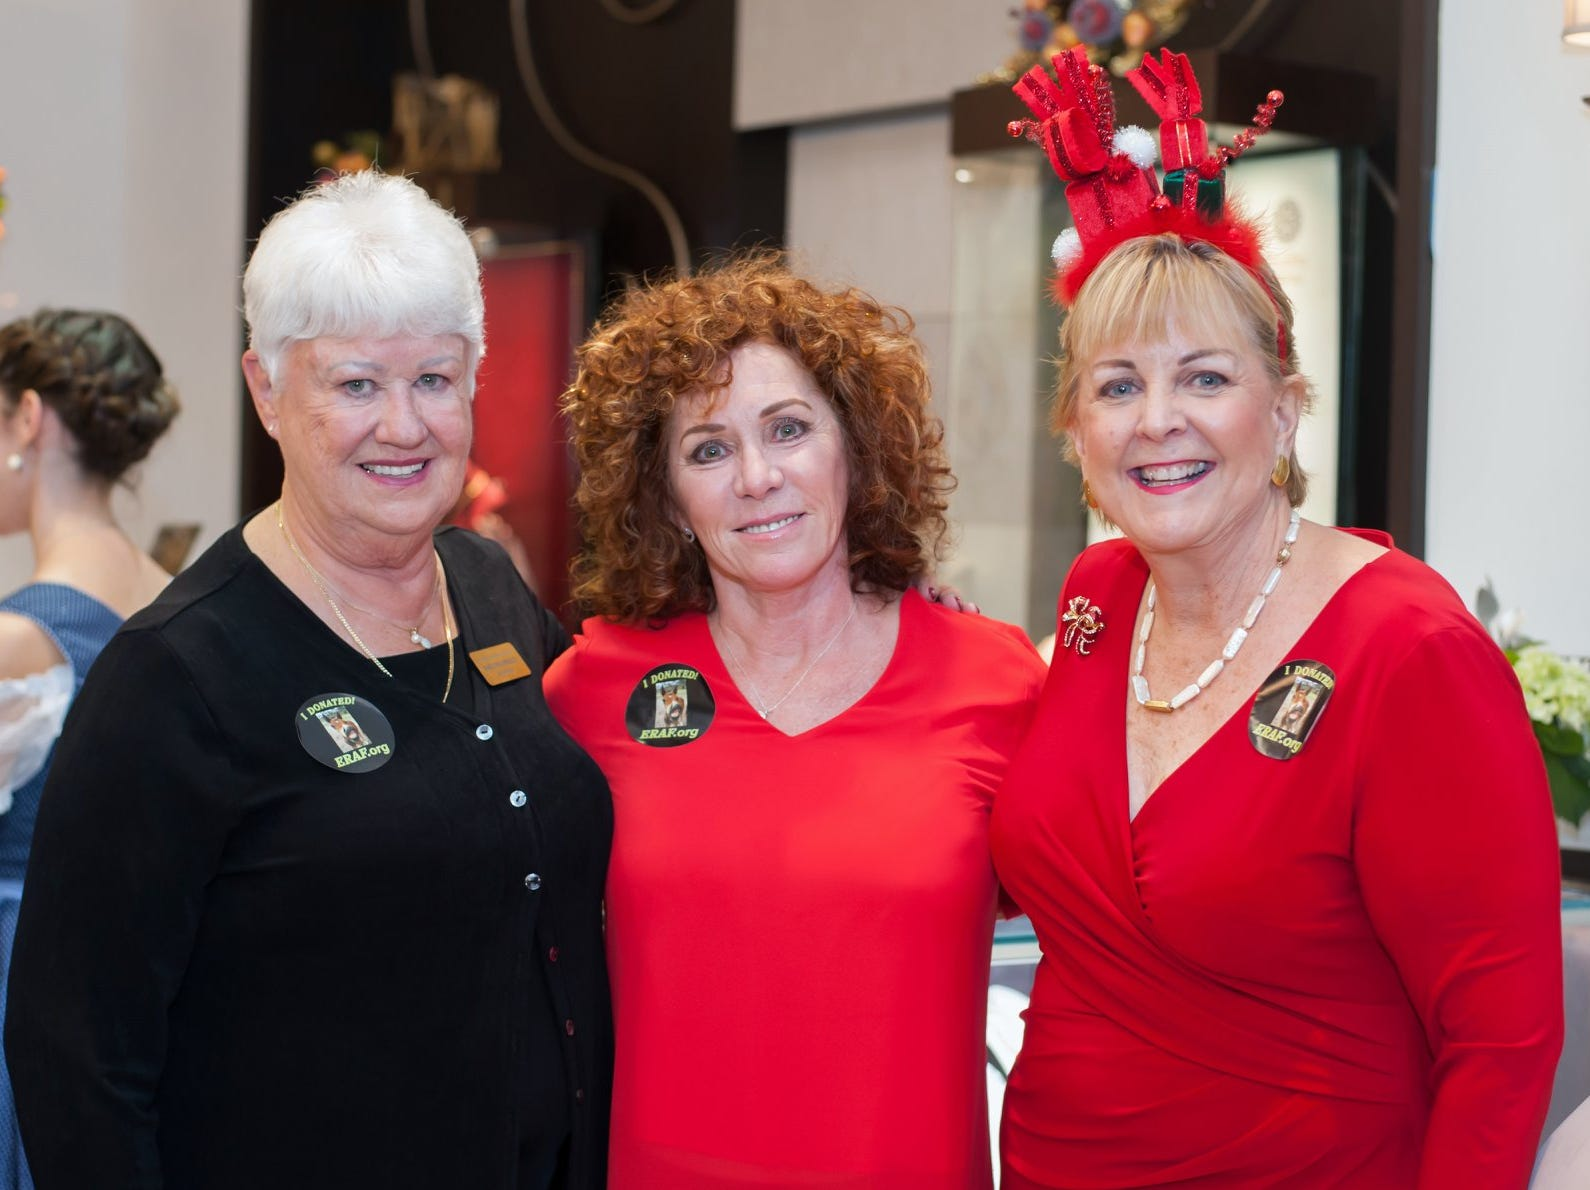 Marilynn Vannucci, left, Denise LeClair-Robins and Beverly Bevis Jones at the Provident Jewelry party for the Equine Rescue and Adoption Foundation.